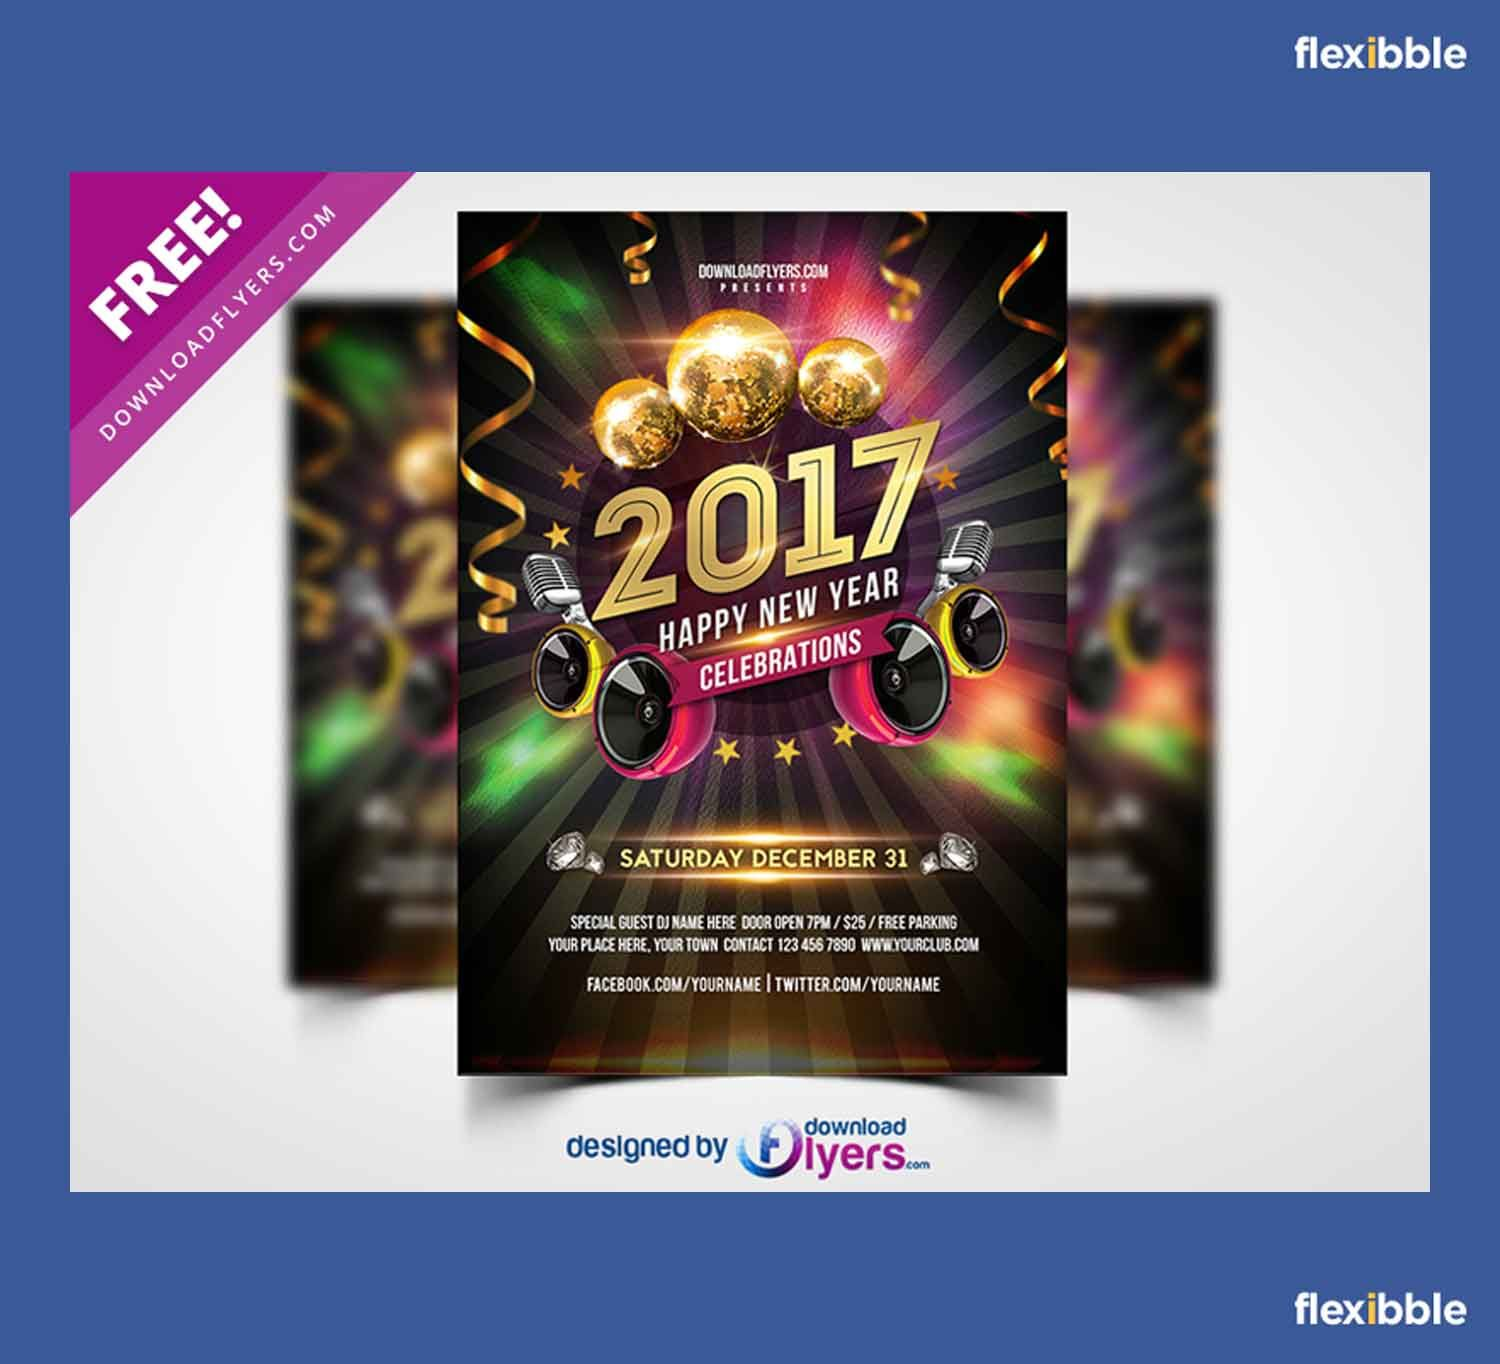 psd new year party flyer template flyer templates psd new year 2017 party flyer template